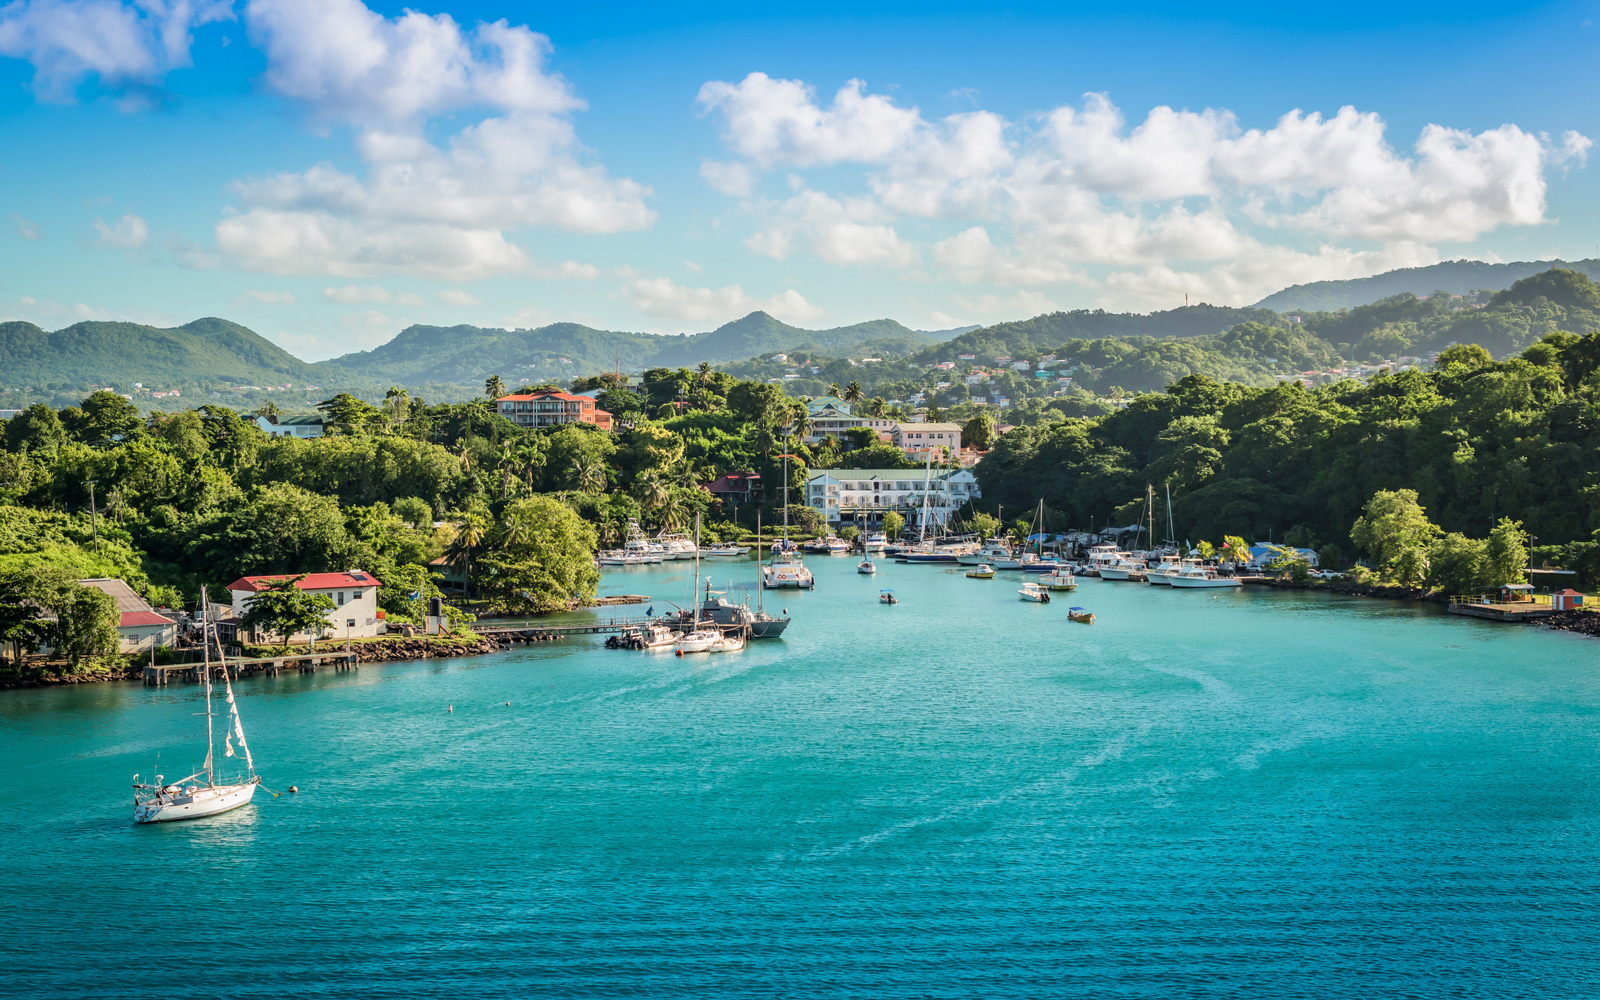 Marina landscape of Castries, St Lucia